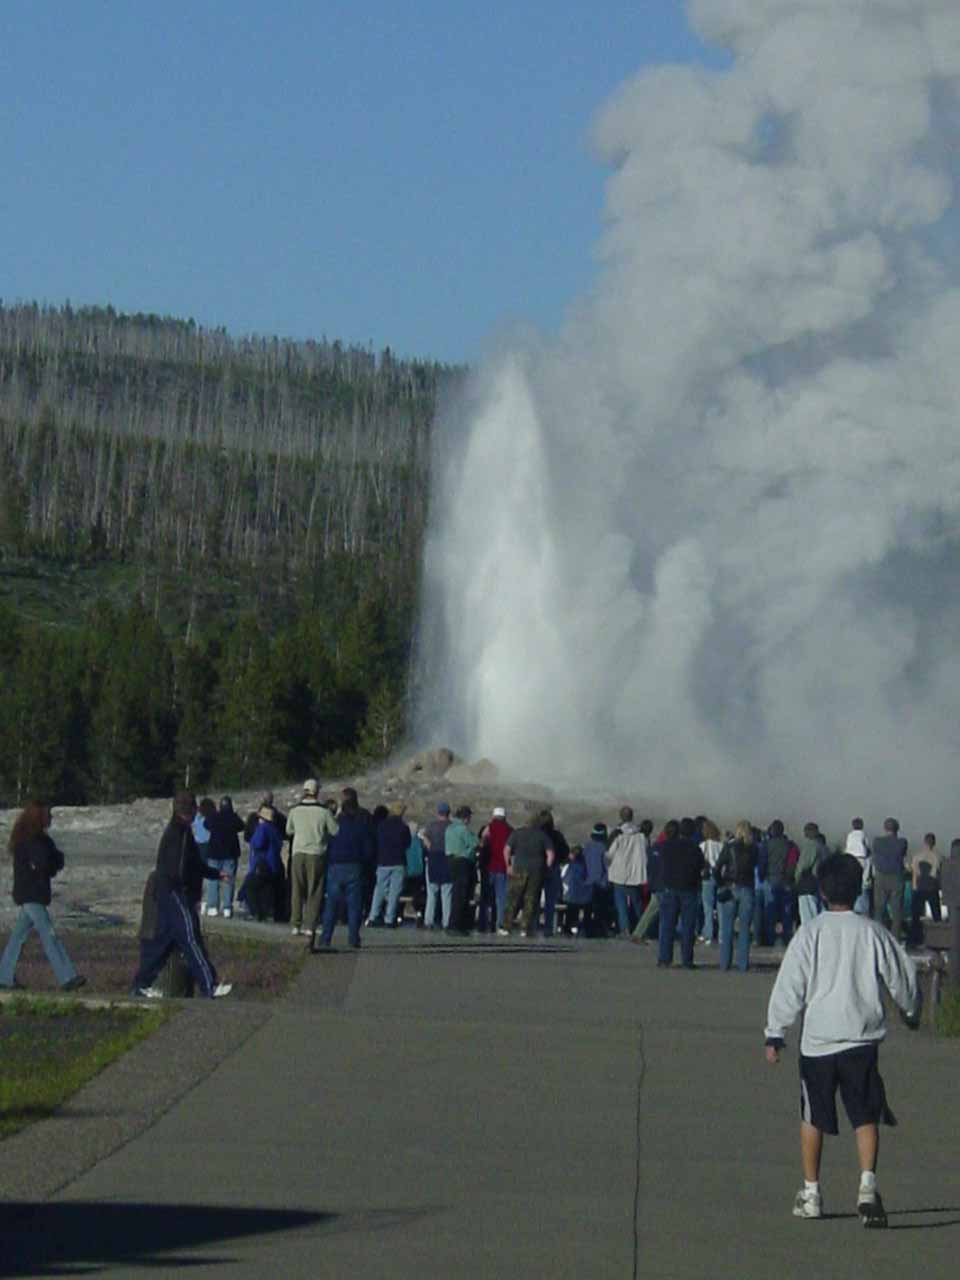 The geyser lost its mojo as we were approaching closer to it